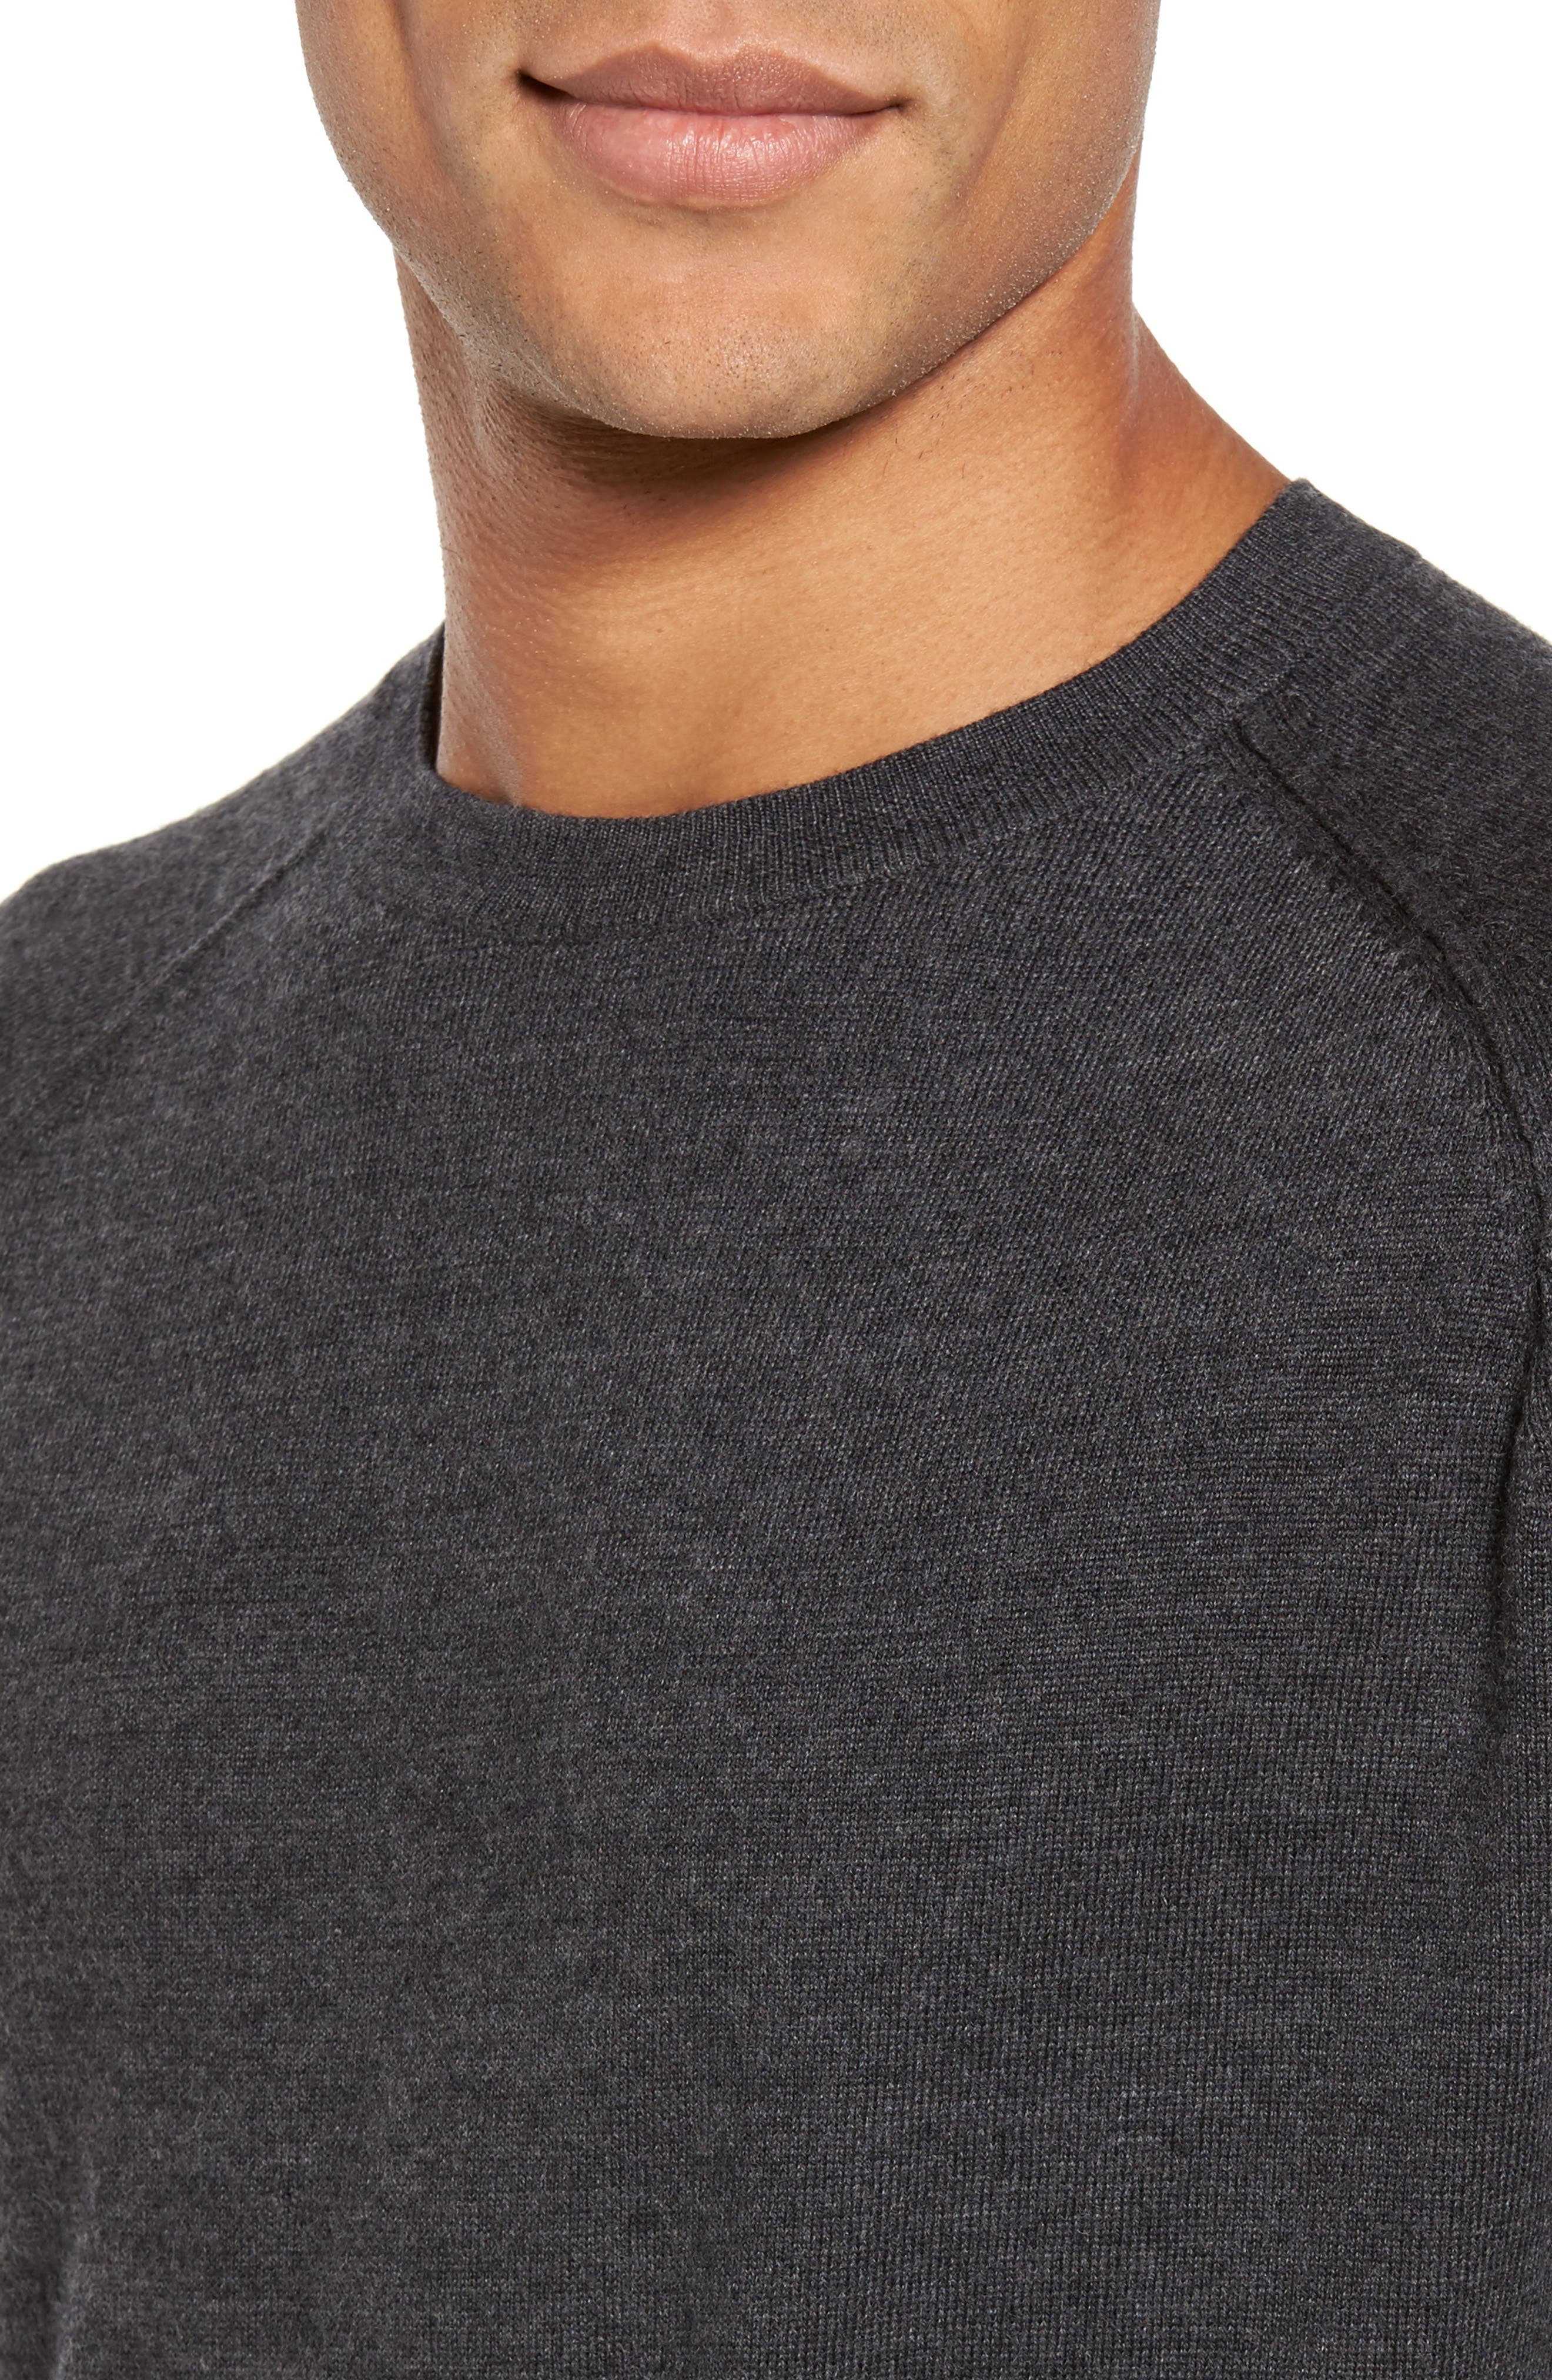 Superlight Slim Modern Wool Sweater,                             Alternate thumbnail 4, color,                             Charcoal